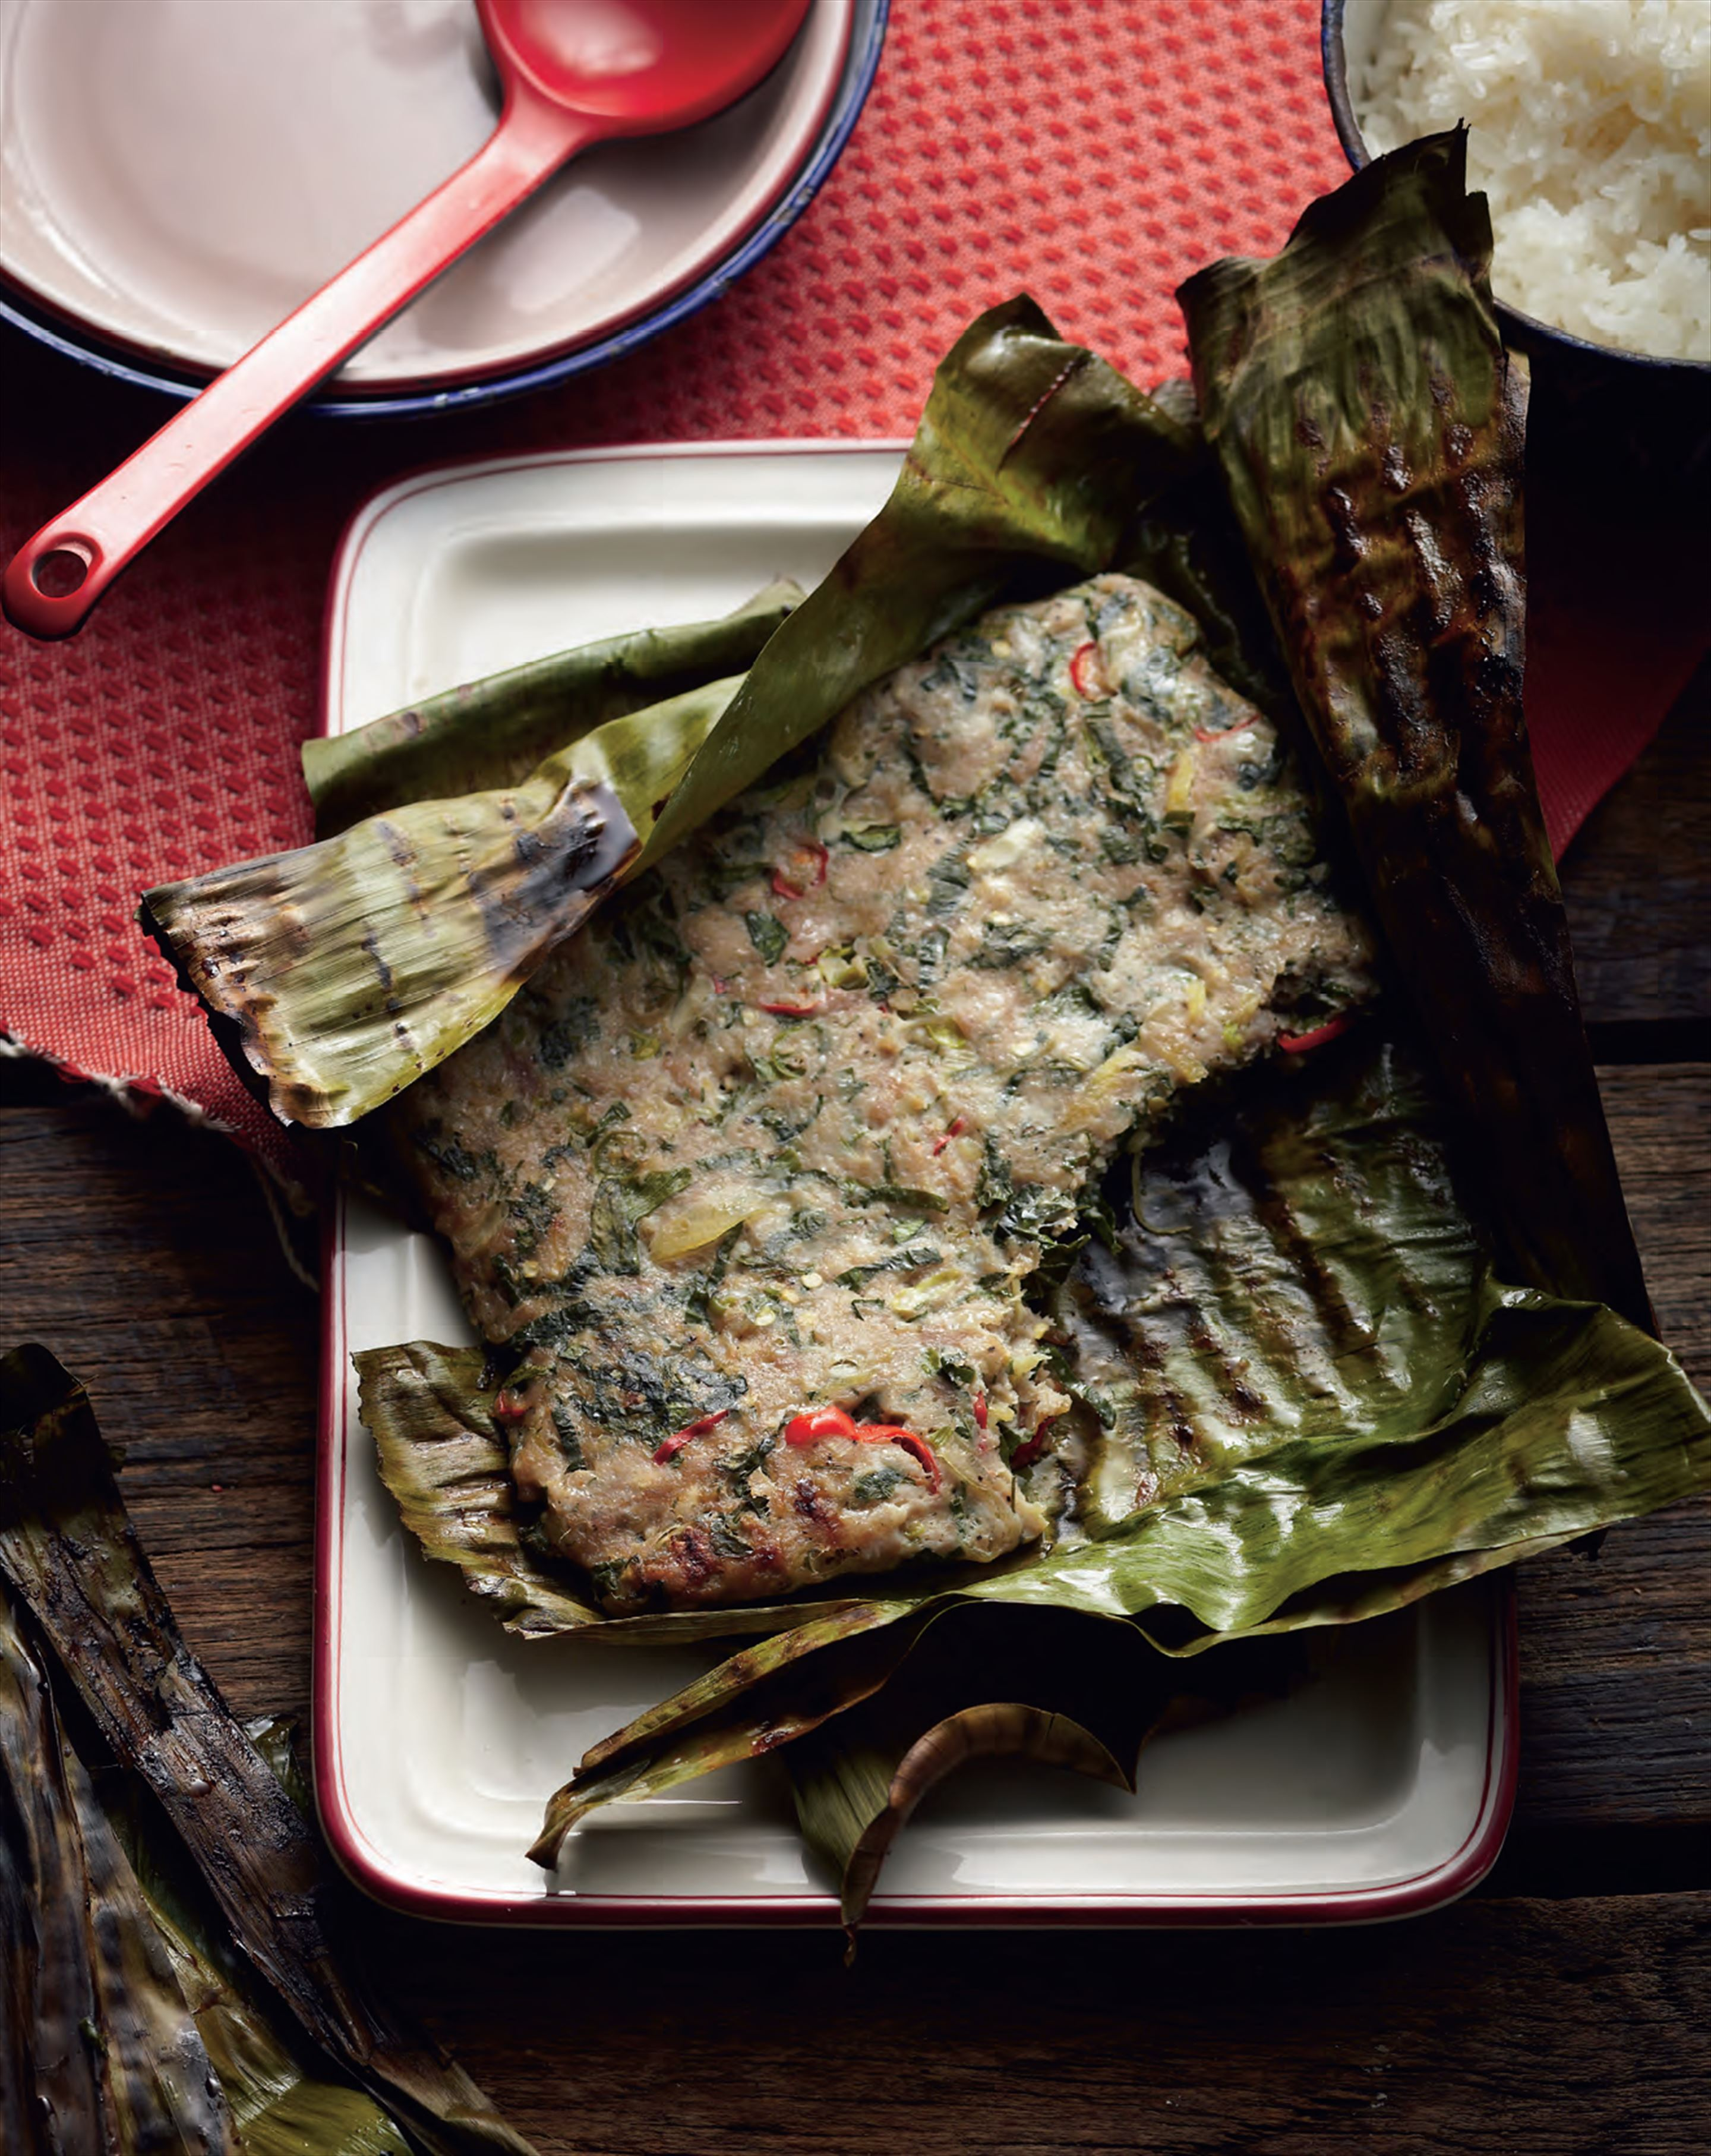 Chicken and herbs wrapped in banana leaf